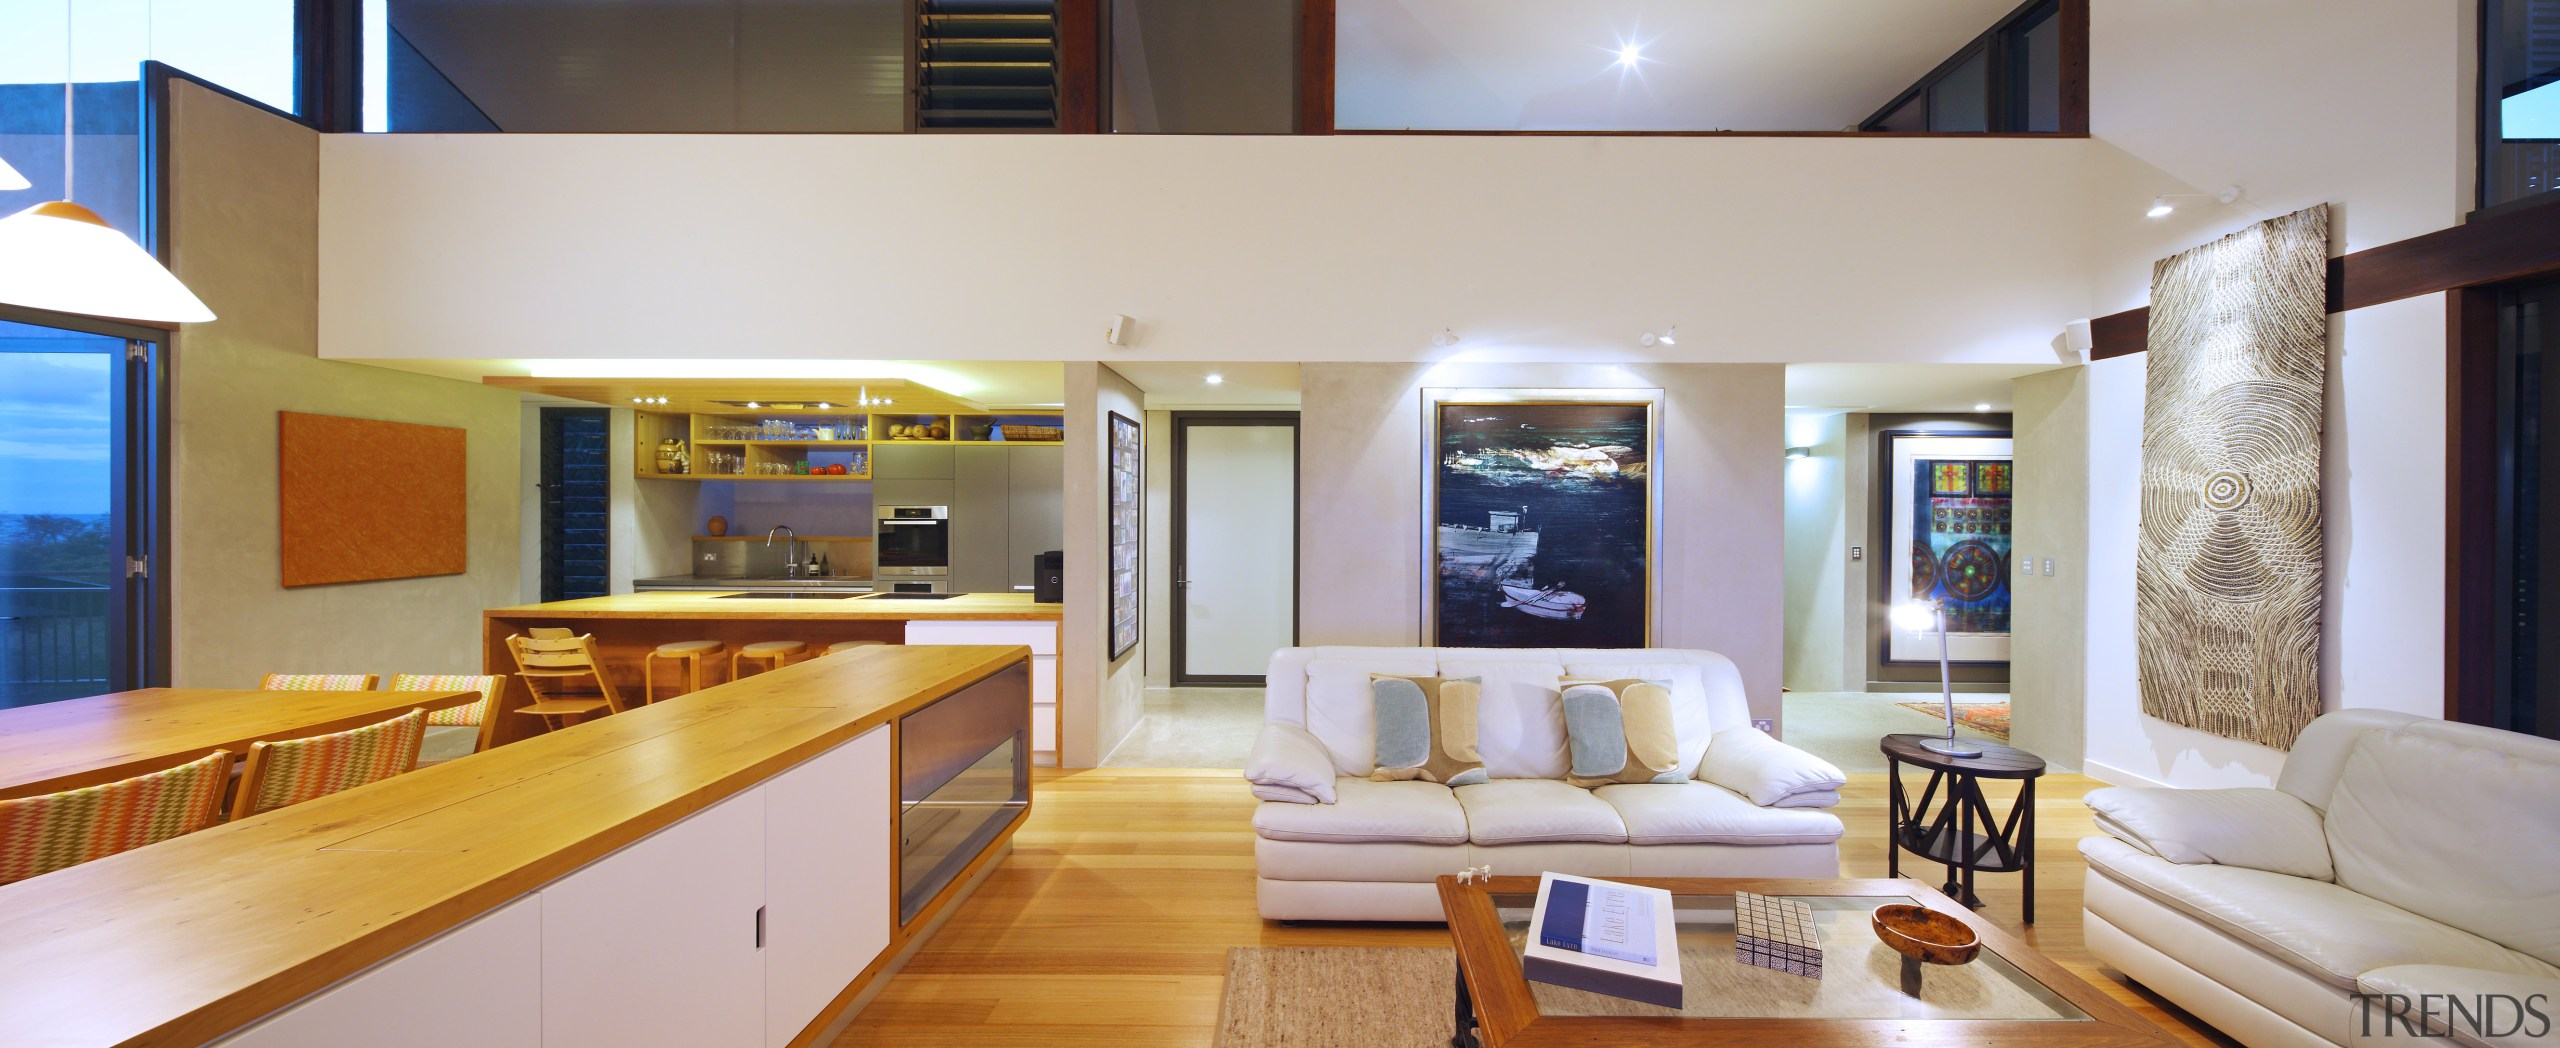 The mezzanine level at the rear of this ceiling, interior design, living room, real estate, gray